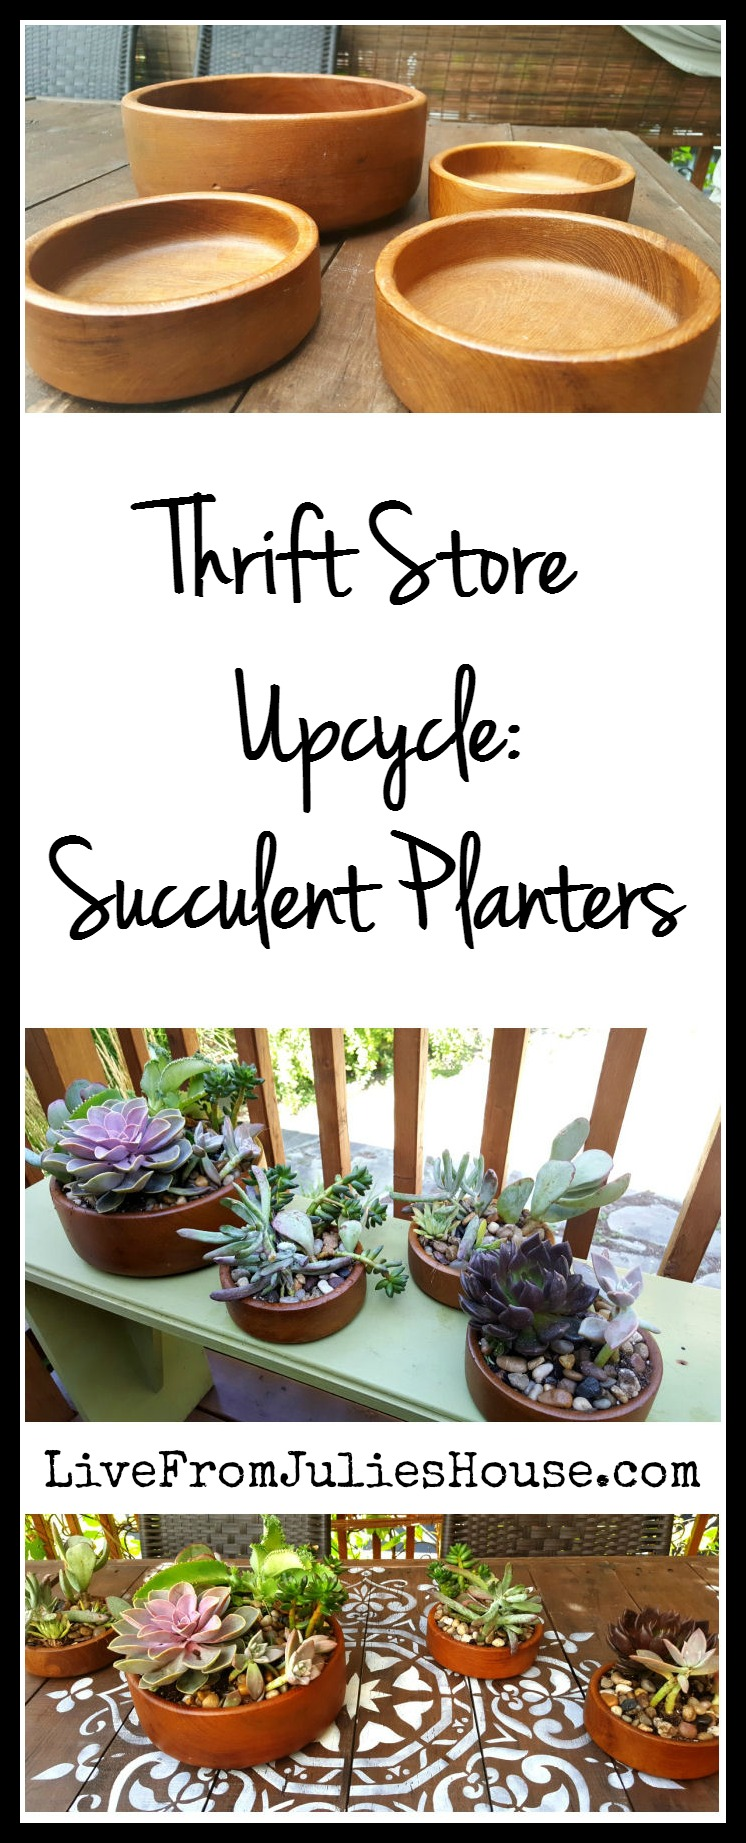 Thrift Store Upcycle: Succulent Planters - Wooden salad bowls are common at thrift stores and they make great, earthy-looking planters for succulents. Drill some drainage holes and you're good to go!